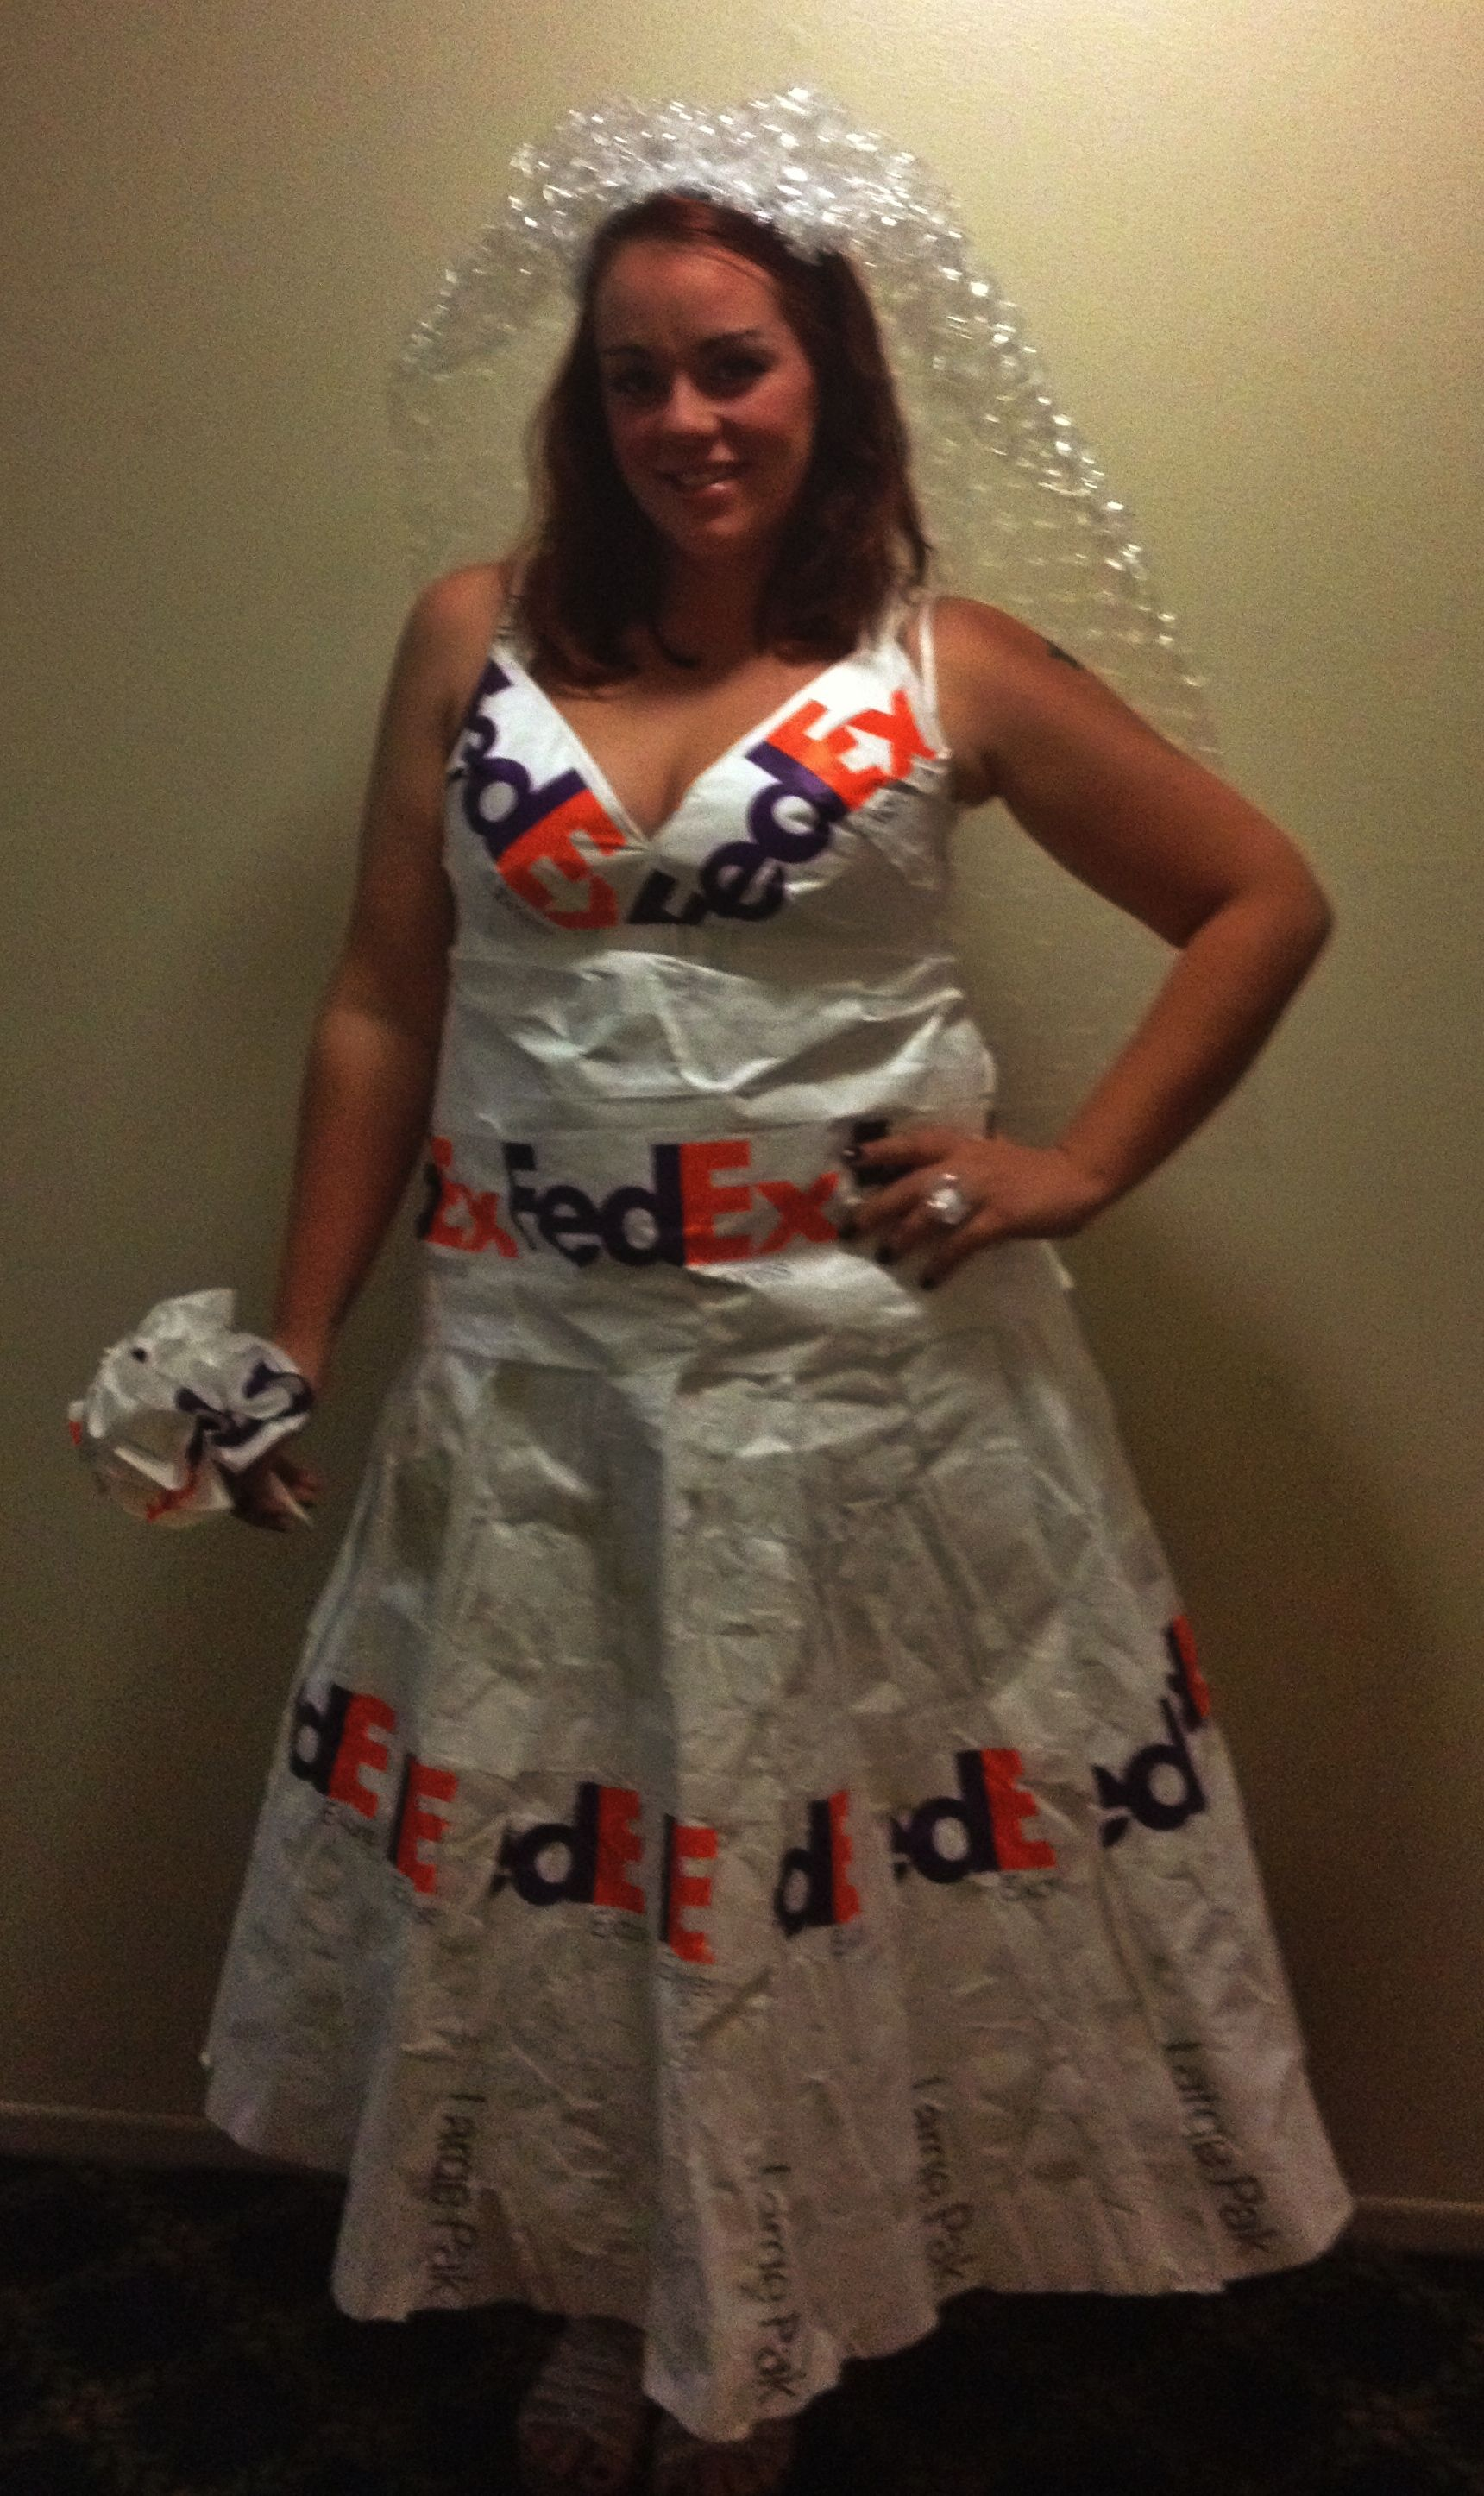 Mail Order Bride Halloween Costume (With images